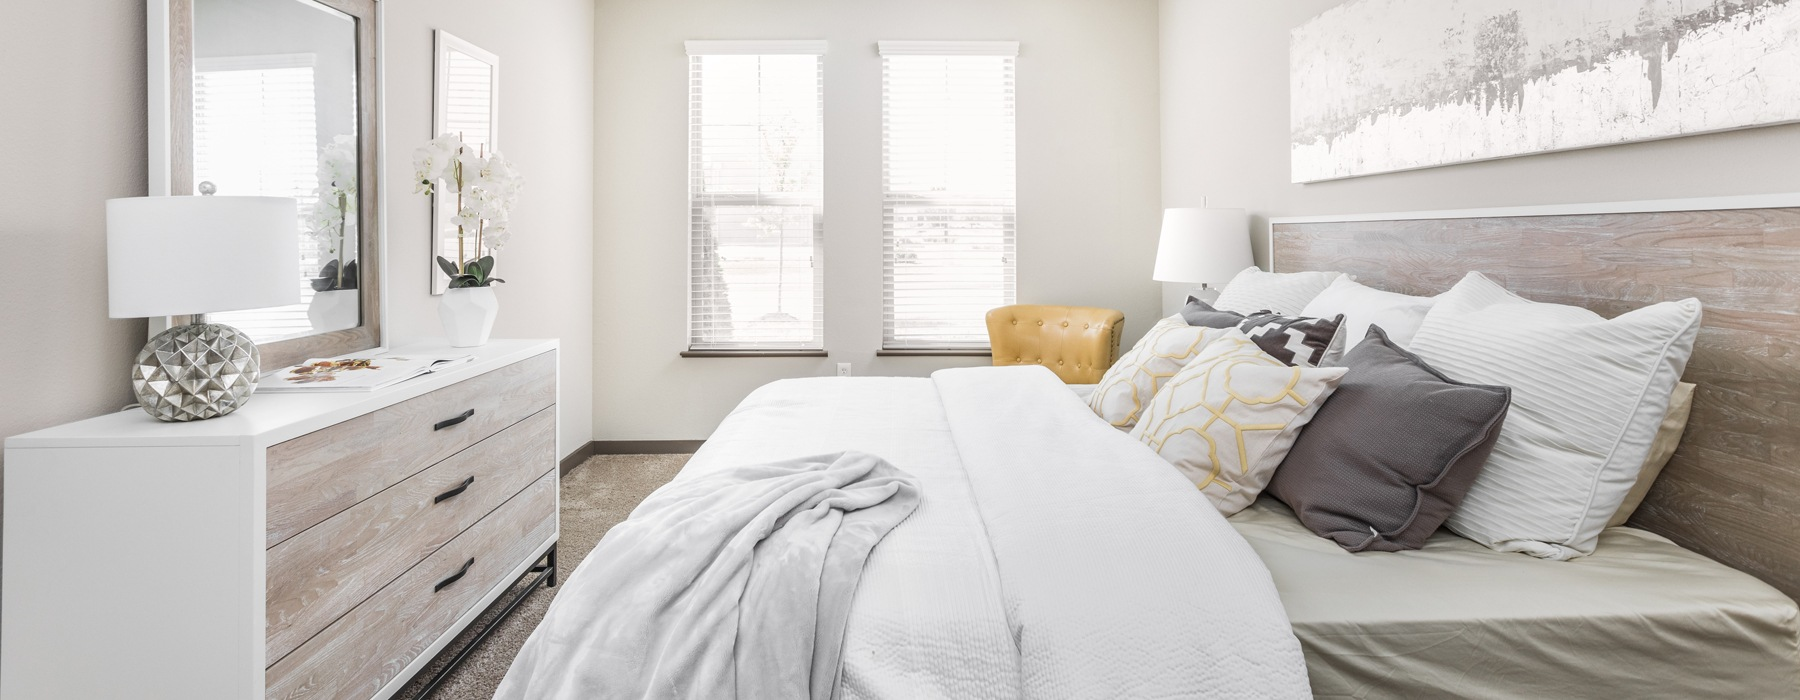 Large bright bedroom